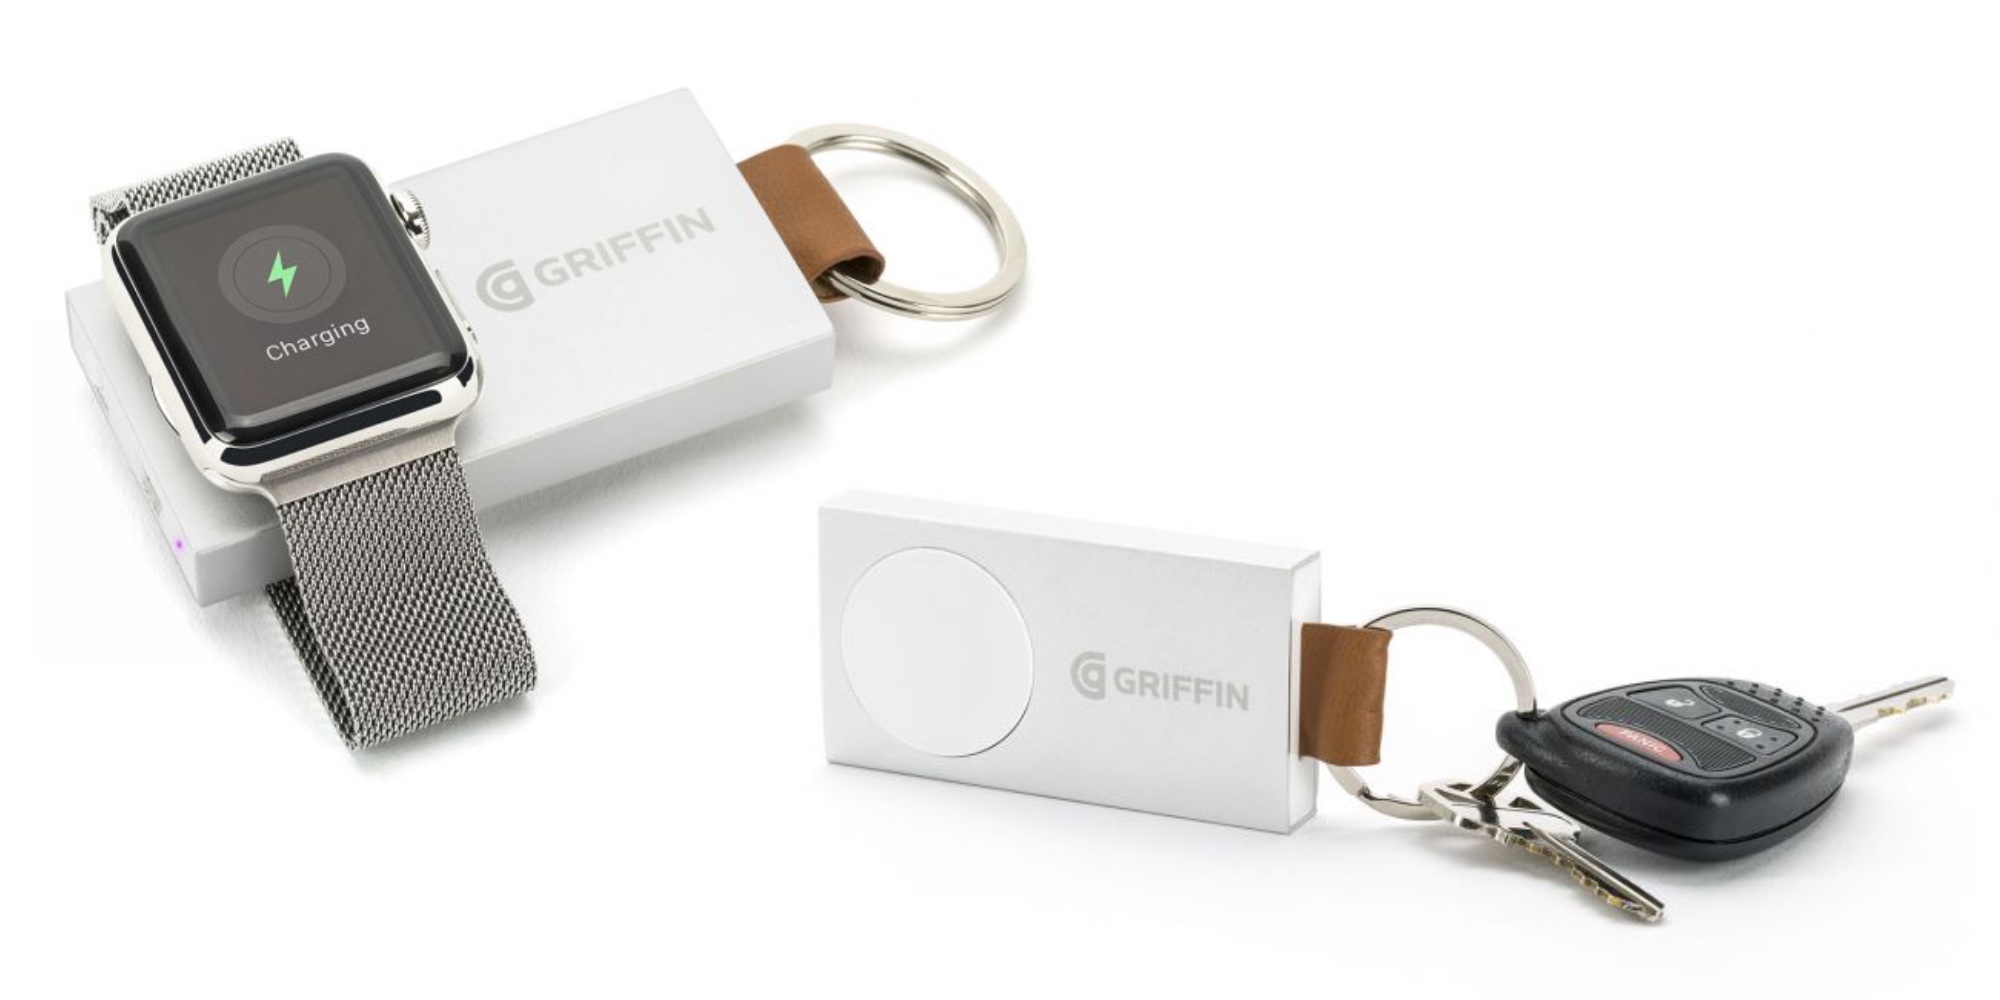 Keep your Apple Watch charged while on-the-go w/ Griffin's $31 MFi Travel Power Bank (Reg. $50)